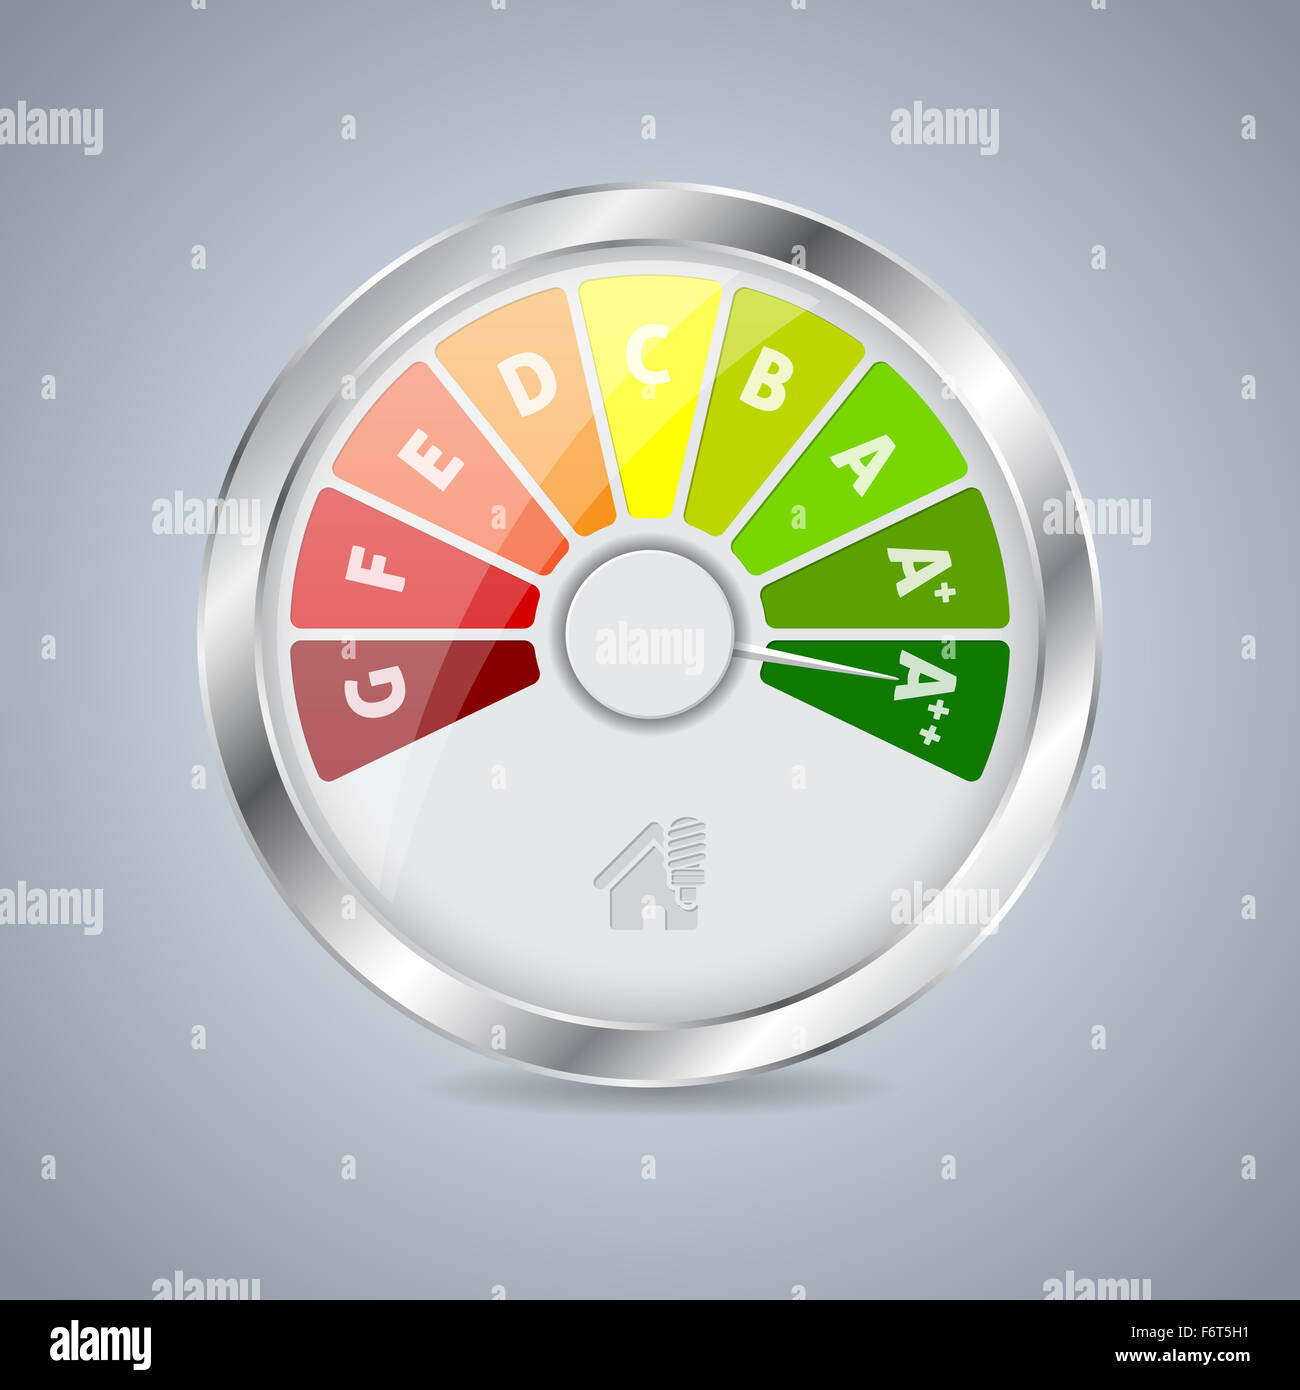 Energy Class Gauge Design With House Icon